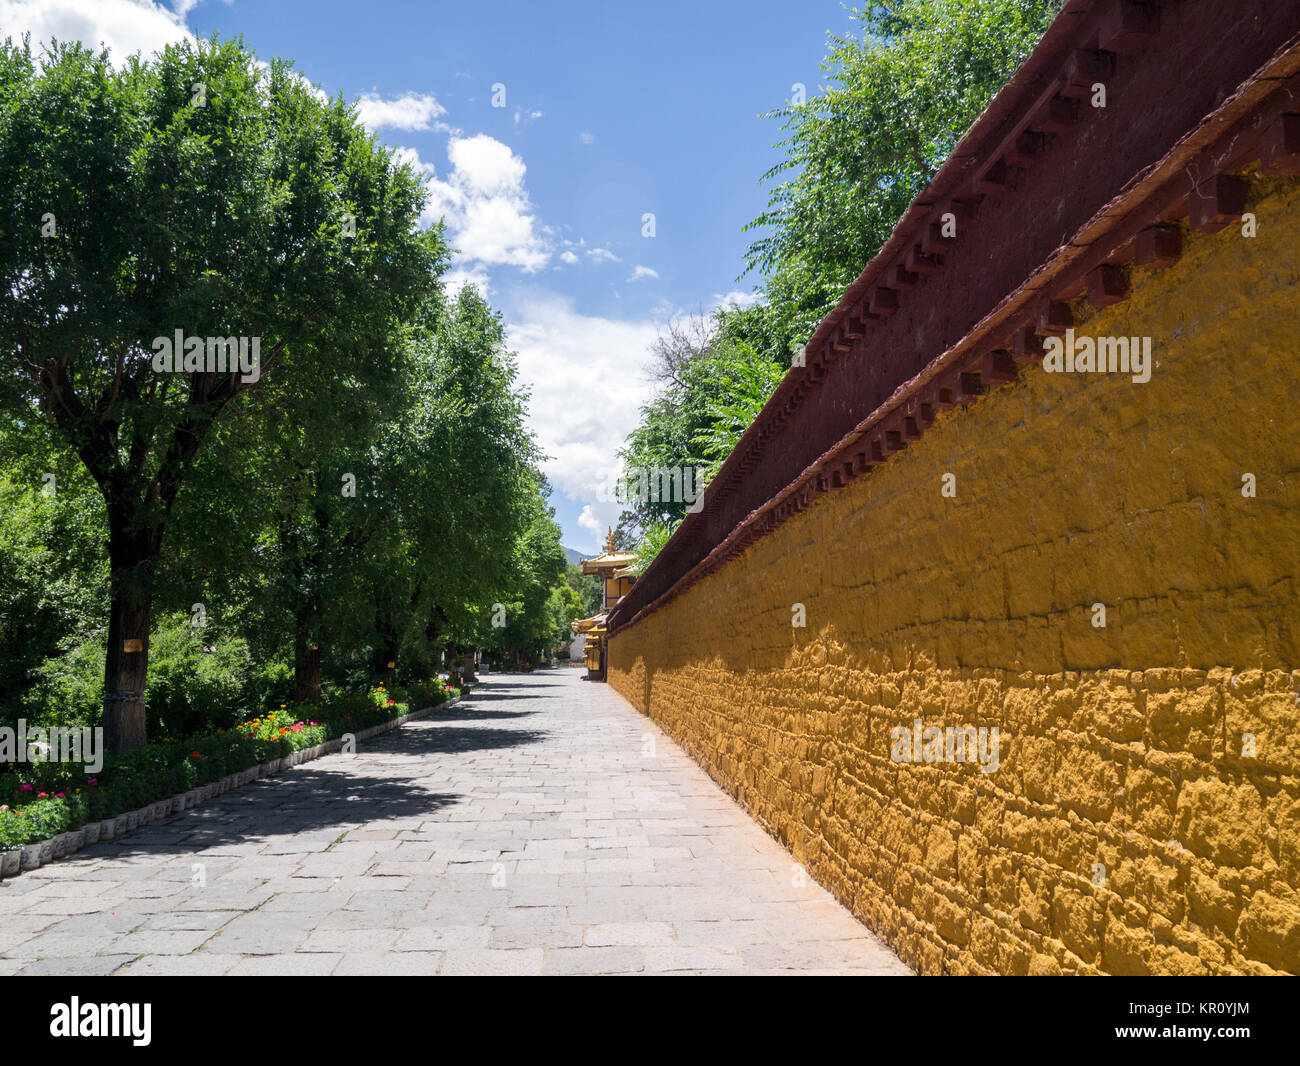 Norbulingka Palace in Lhasa, Tibet, China - Stock Image